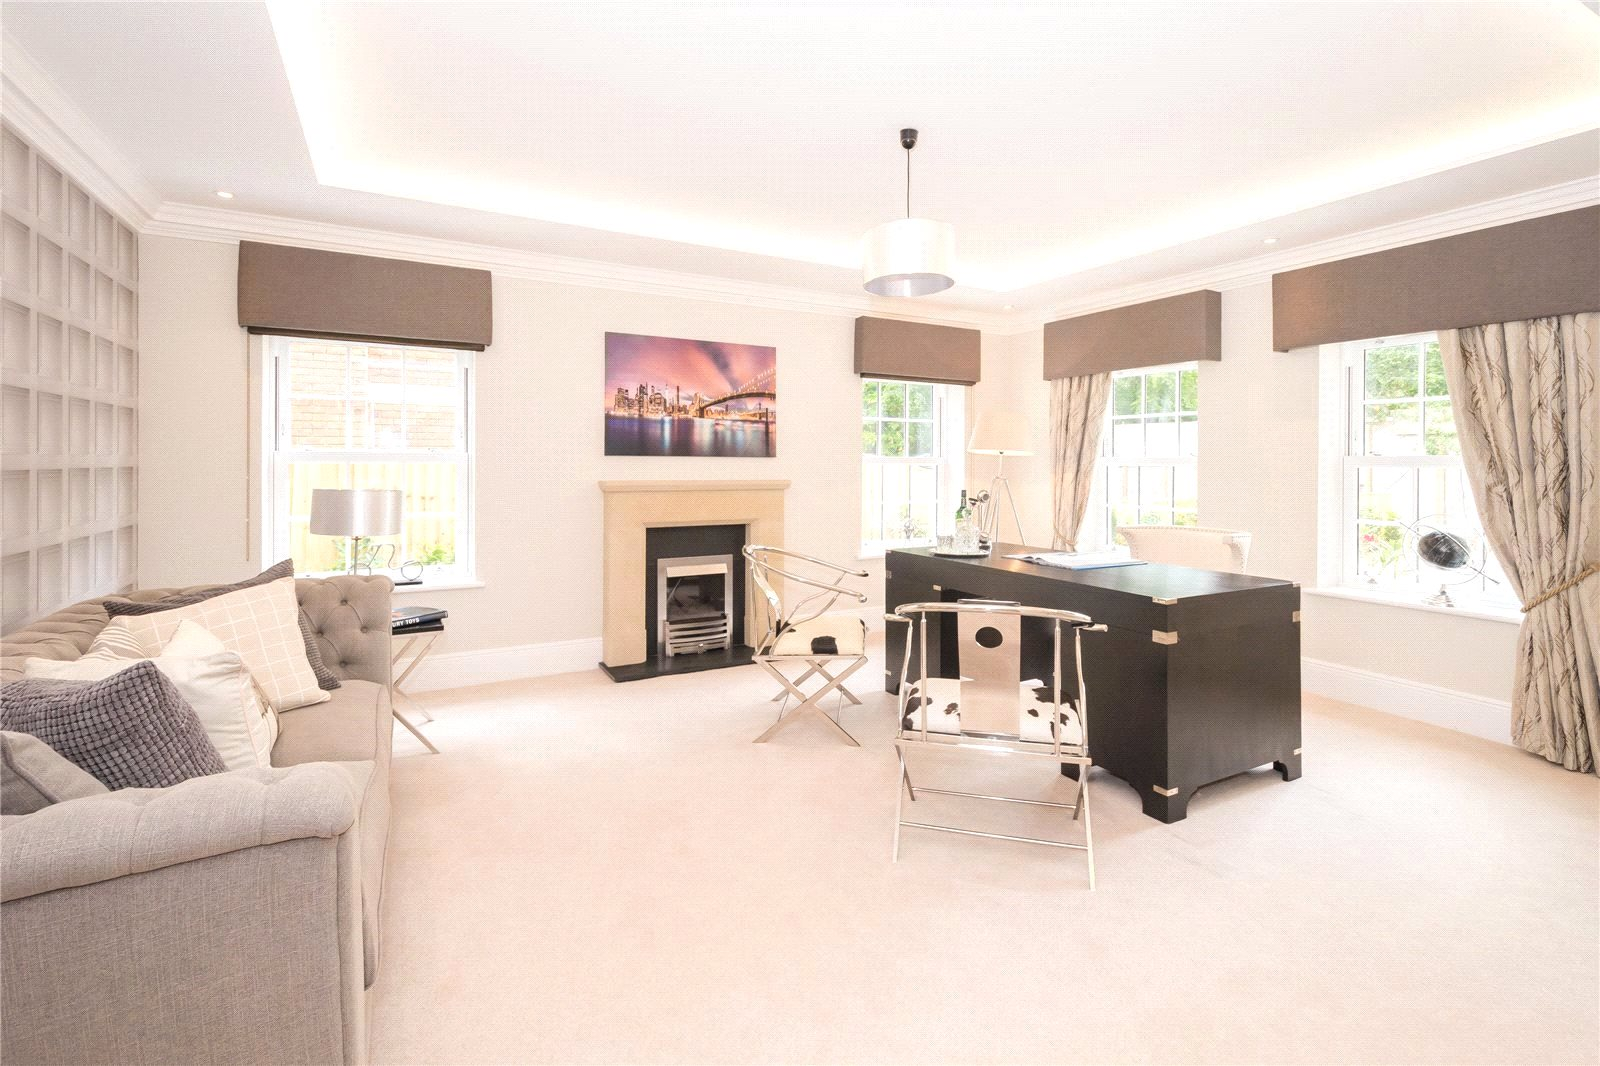 Additional photo for property listing at Fulmer Drive, Gerrards Cross, Buckinghamshire, SL9 Gerrards Cross, Αγγλια